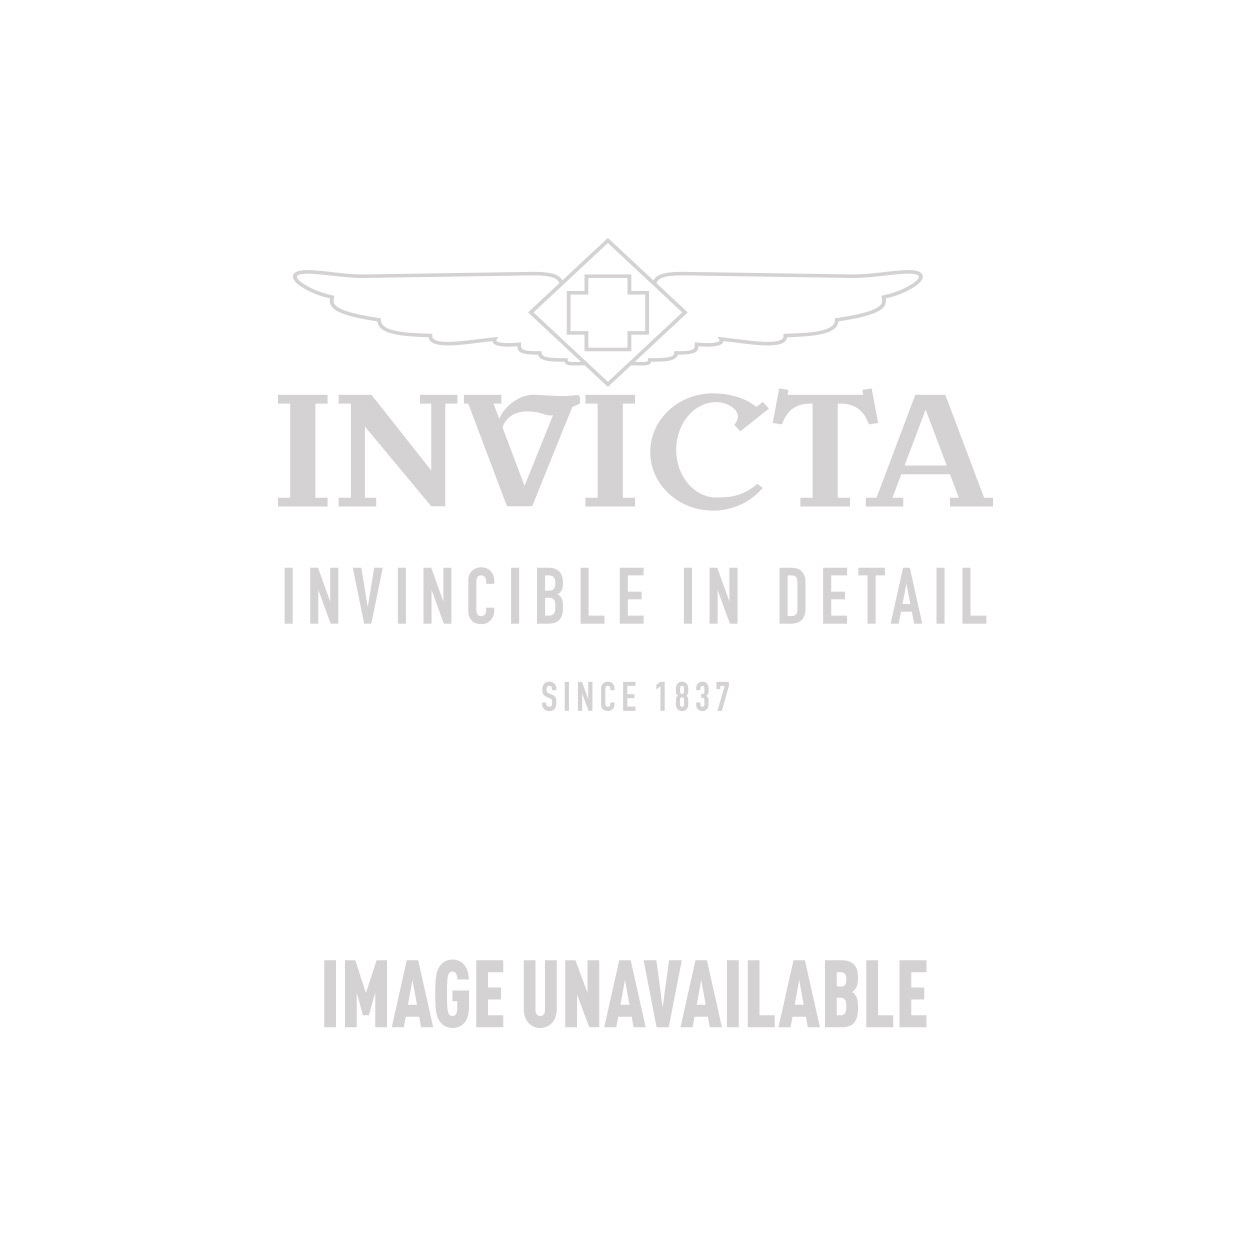 Invicta Angel Women s Quartz Watch - Gold case with Gold tone Stainless  Steel band - Model 12466 b93ac5c2453